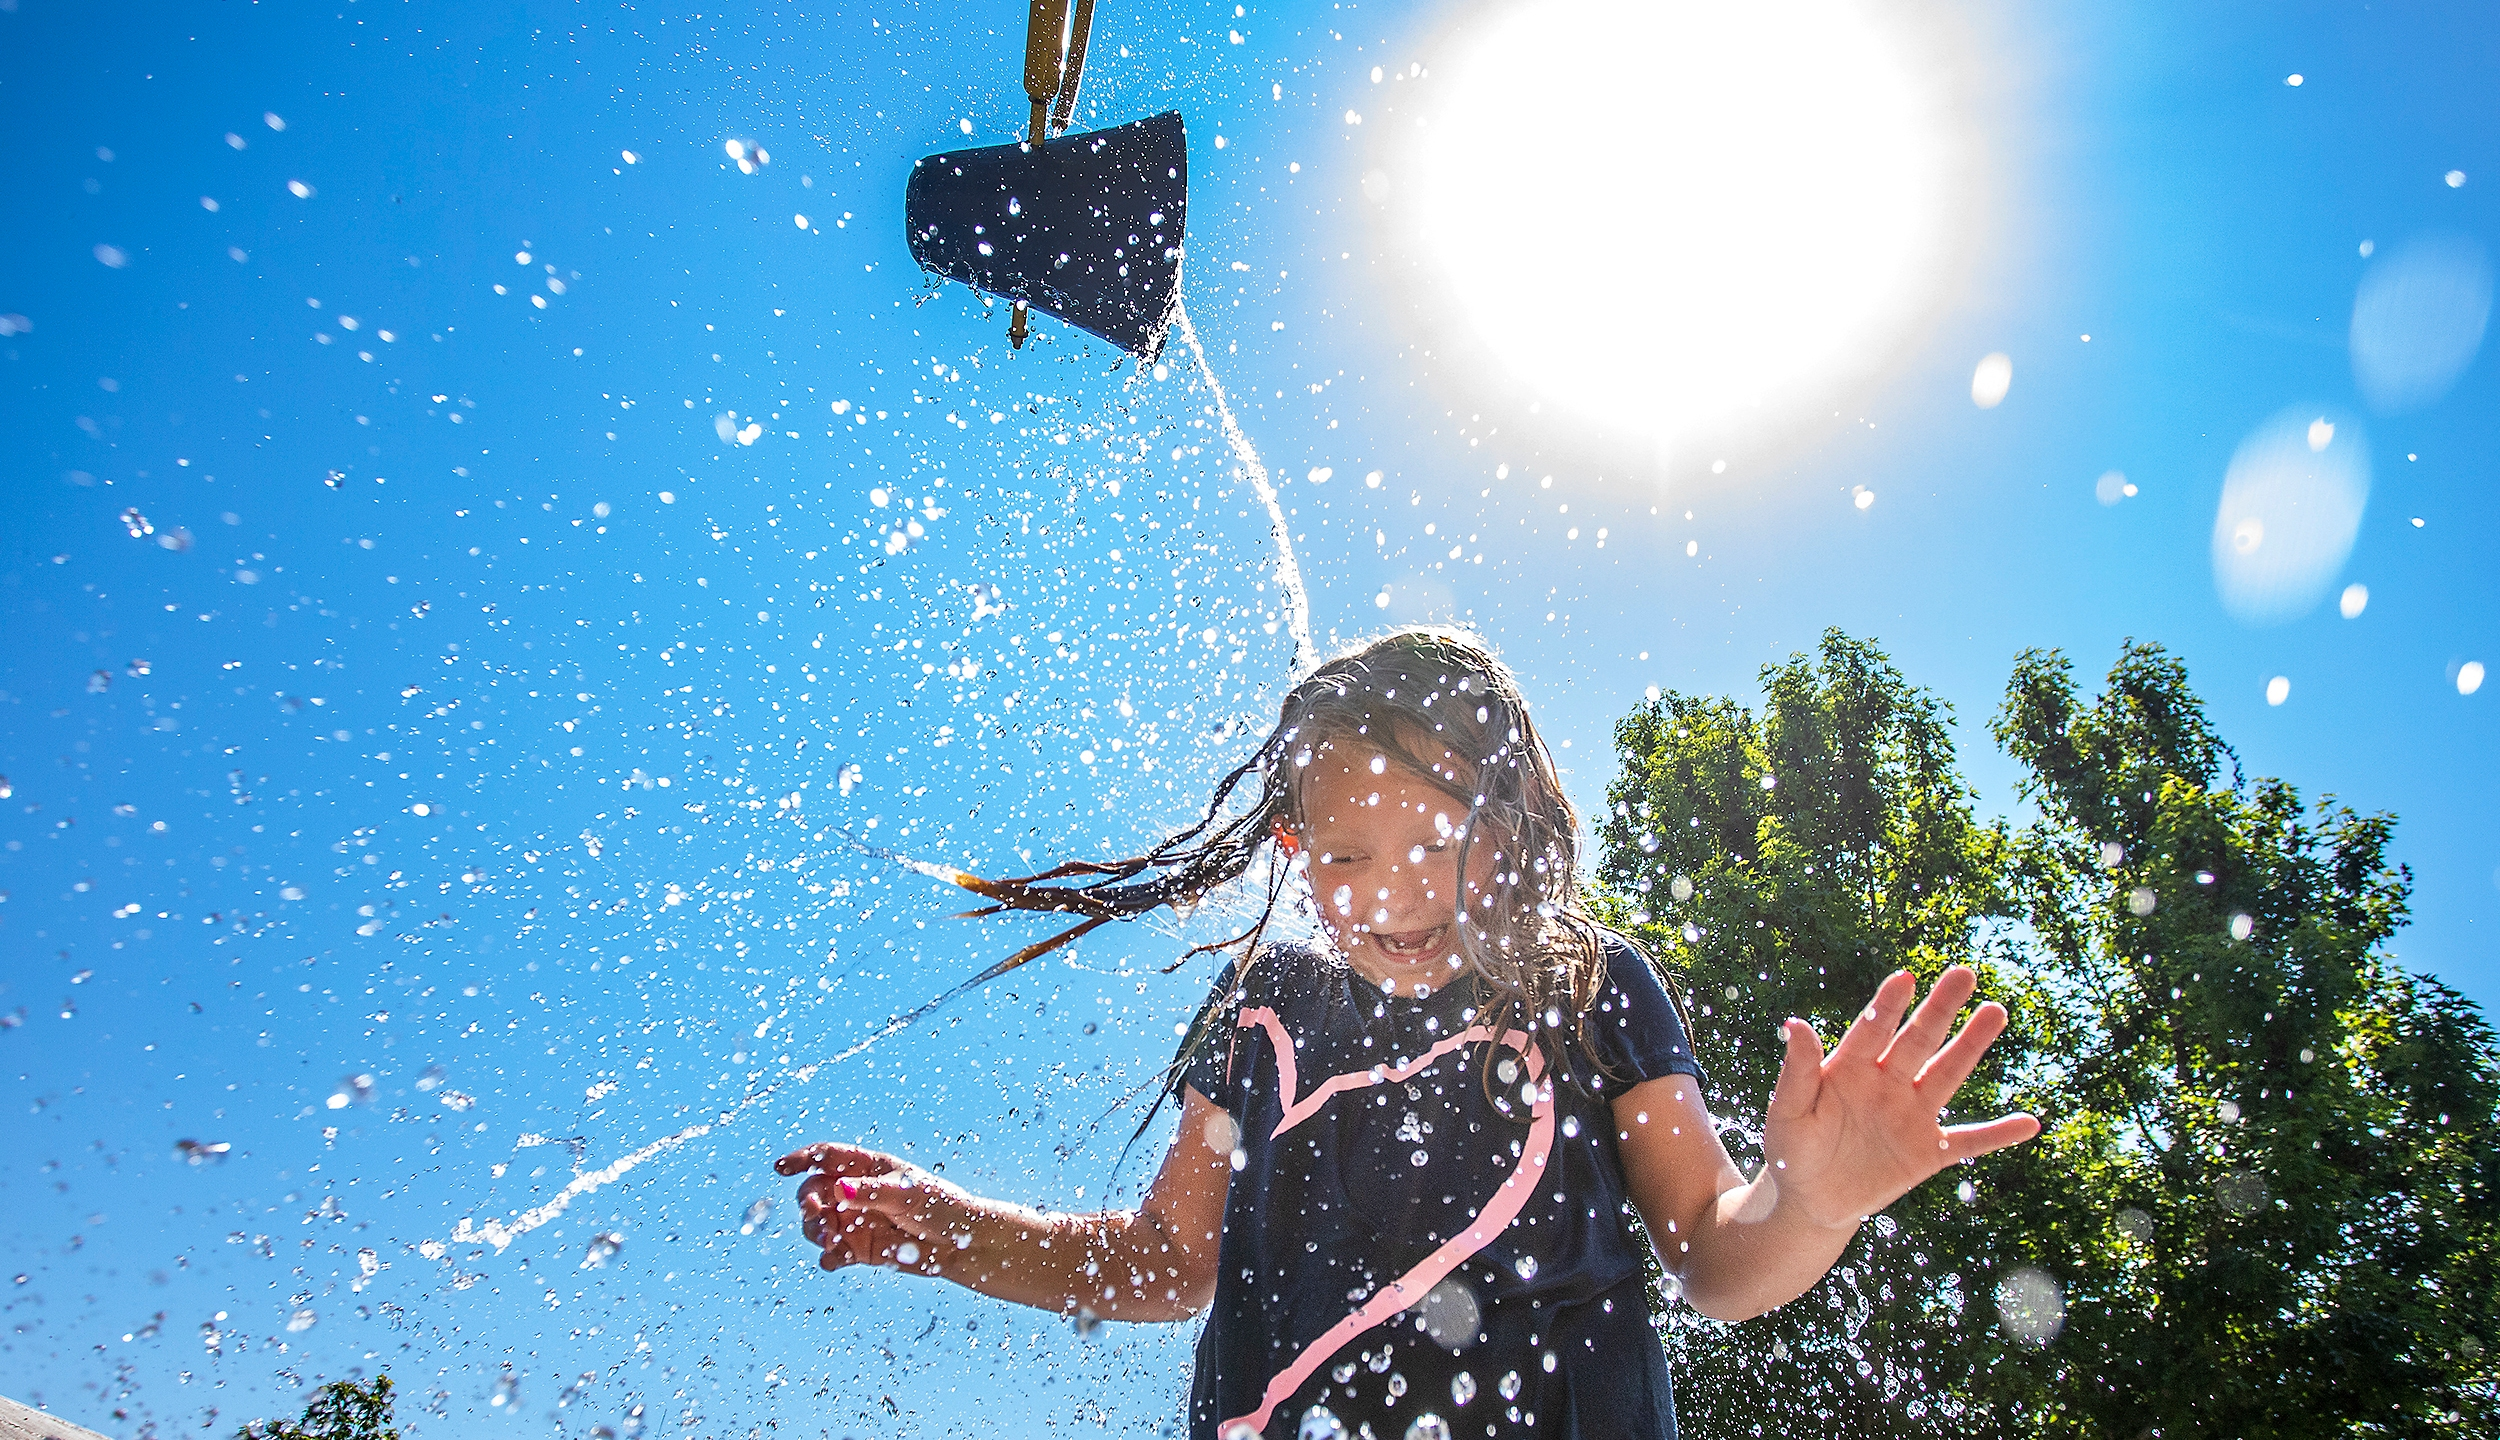 Water comes crashing down from a bucket directly on top of Jaecee Adams, 7, of Orofino, as she plays at the Orofino Splash Pad in Orofino, Idaho on Wednesday, June 30, 2021. (August Frank/The Lewiston Tribune via AP)